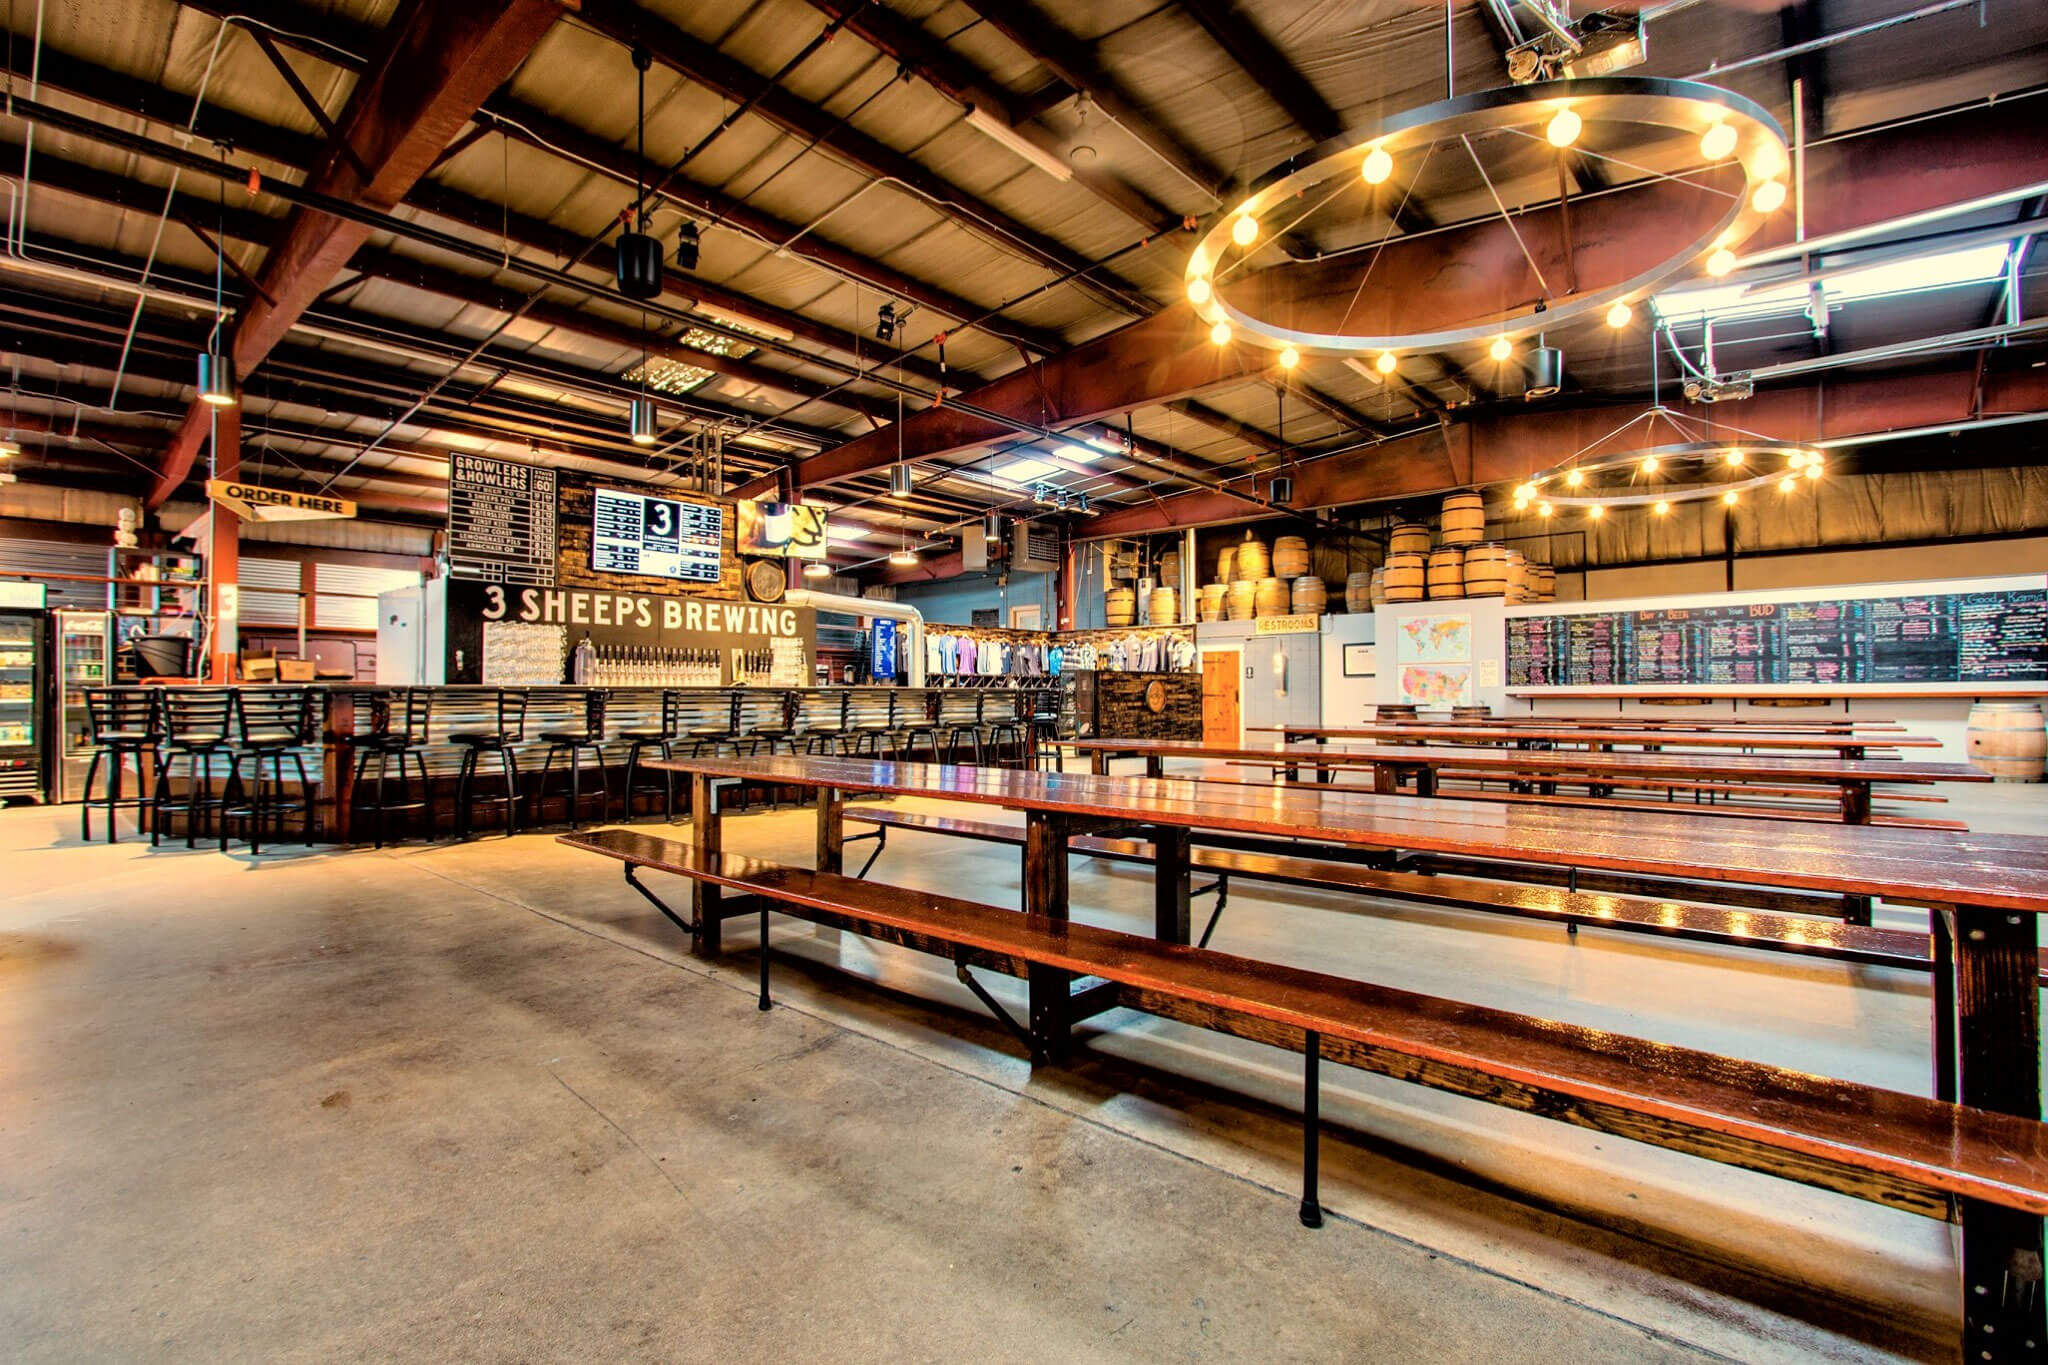 Inside the taproom at 3 Sheeps Brewing Co. in Sheboygan, Wisconsin